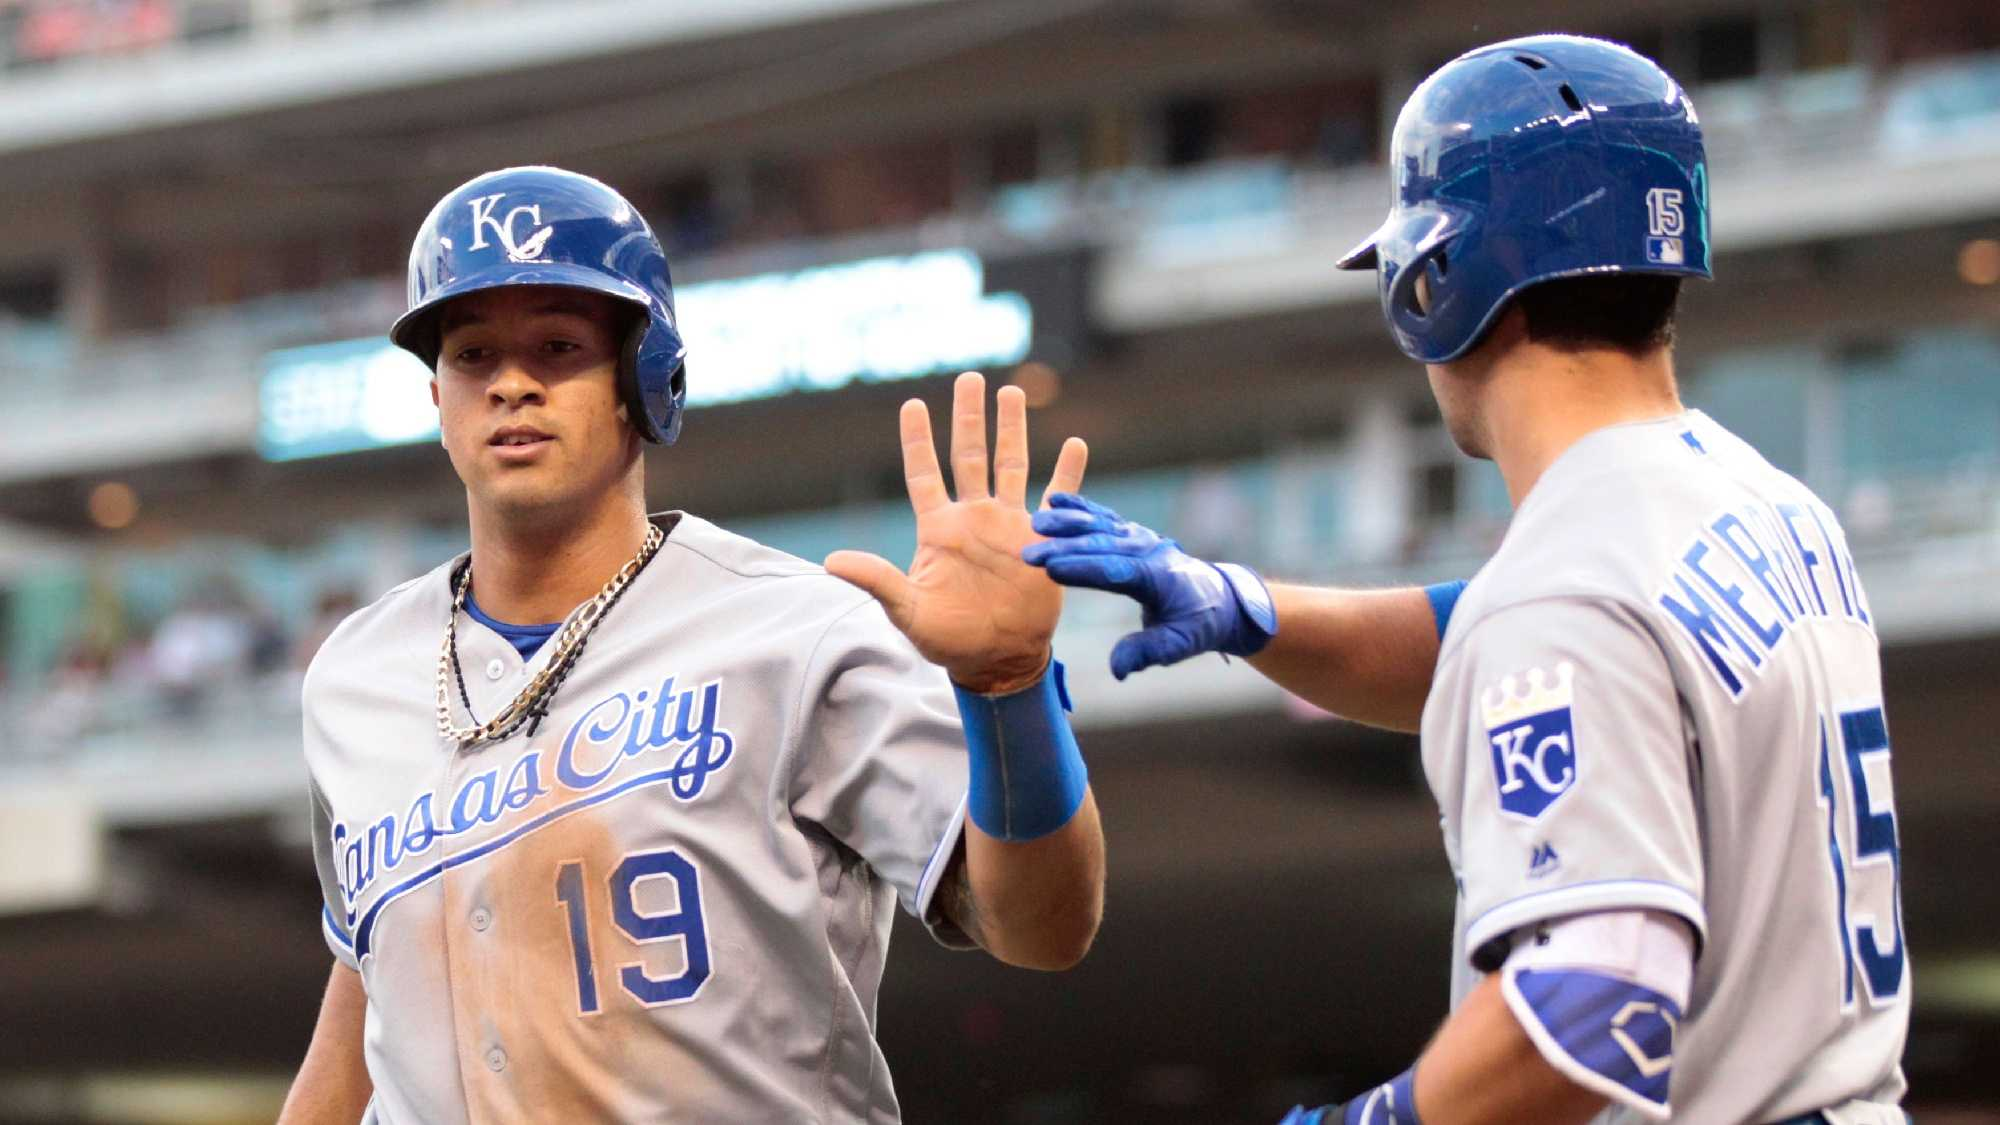 Kansas City Royals Cheslor Cuthbert is congratulated by teammate Whit Merrifield after scoring in the fourth inning during a baseball game against the Minnesota Twins on Tuesday, May, 24, 2016 in Minneapolis. (AP Photo/Andy Clayton-King)